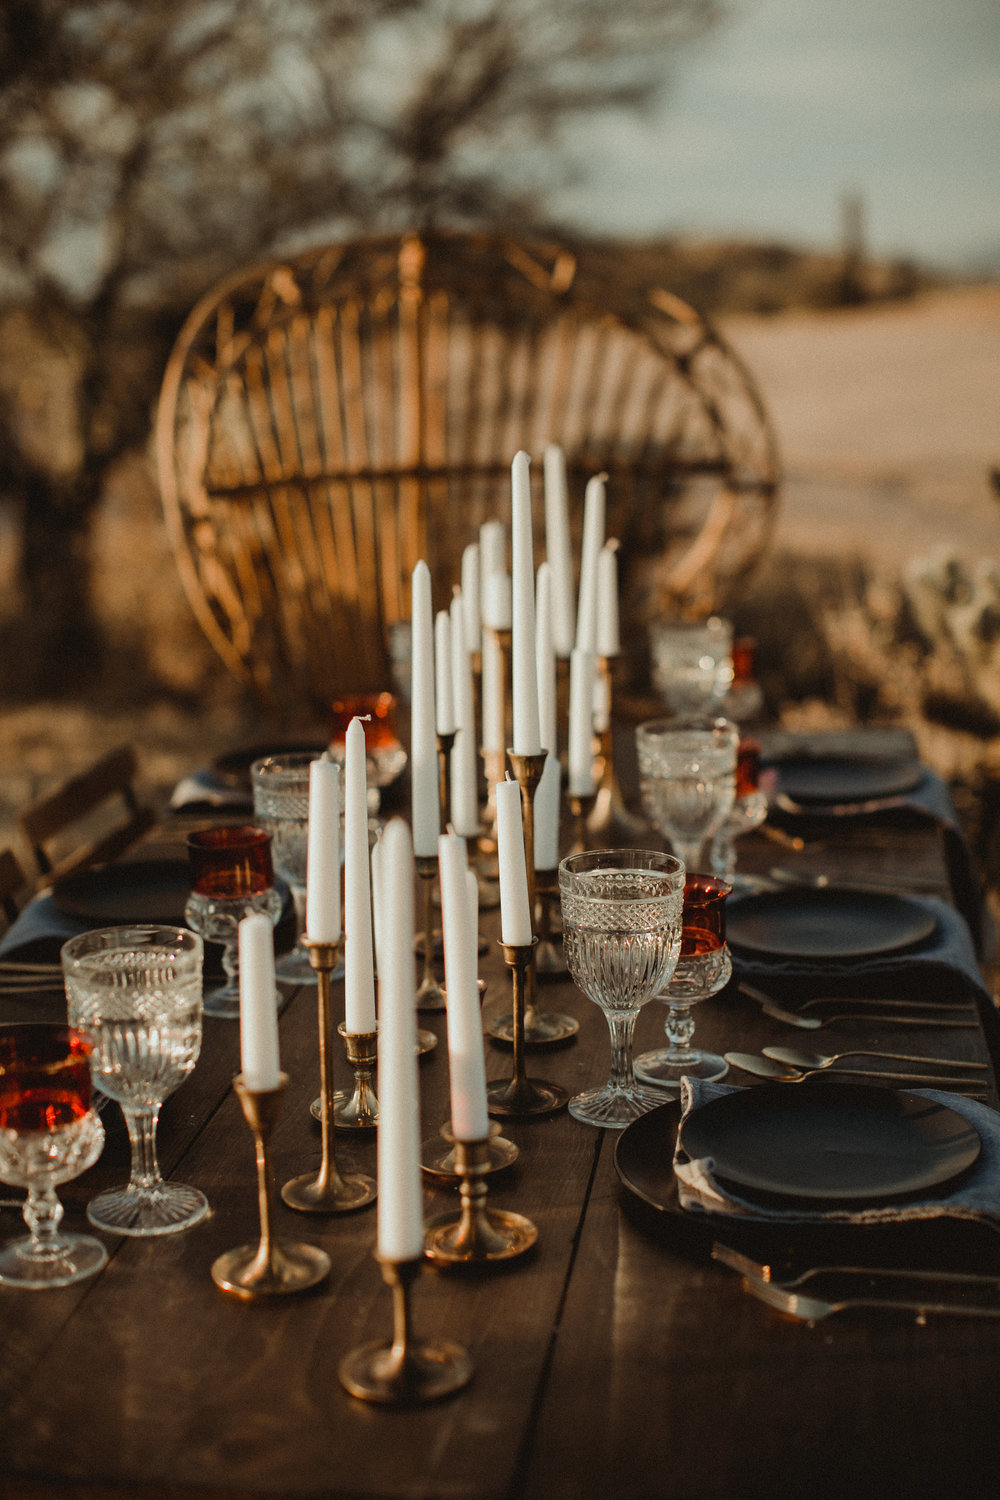 Desert Boho Vagabond Inspiration Shoot with Tremaine Ranch, From the daisies, Noir Floral, Phoenix, Arizona - Wedding & Event Rentals, Vintage, Specialty105.jpg